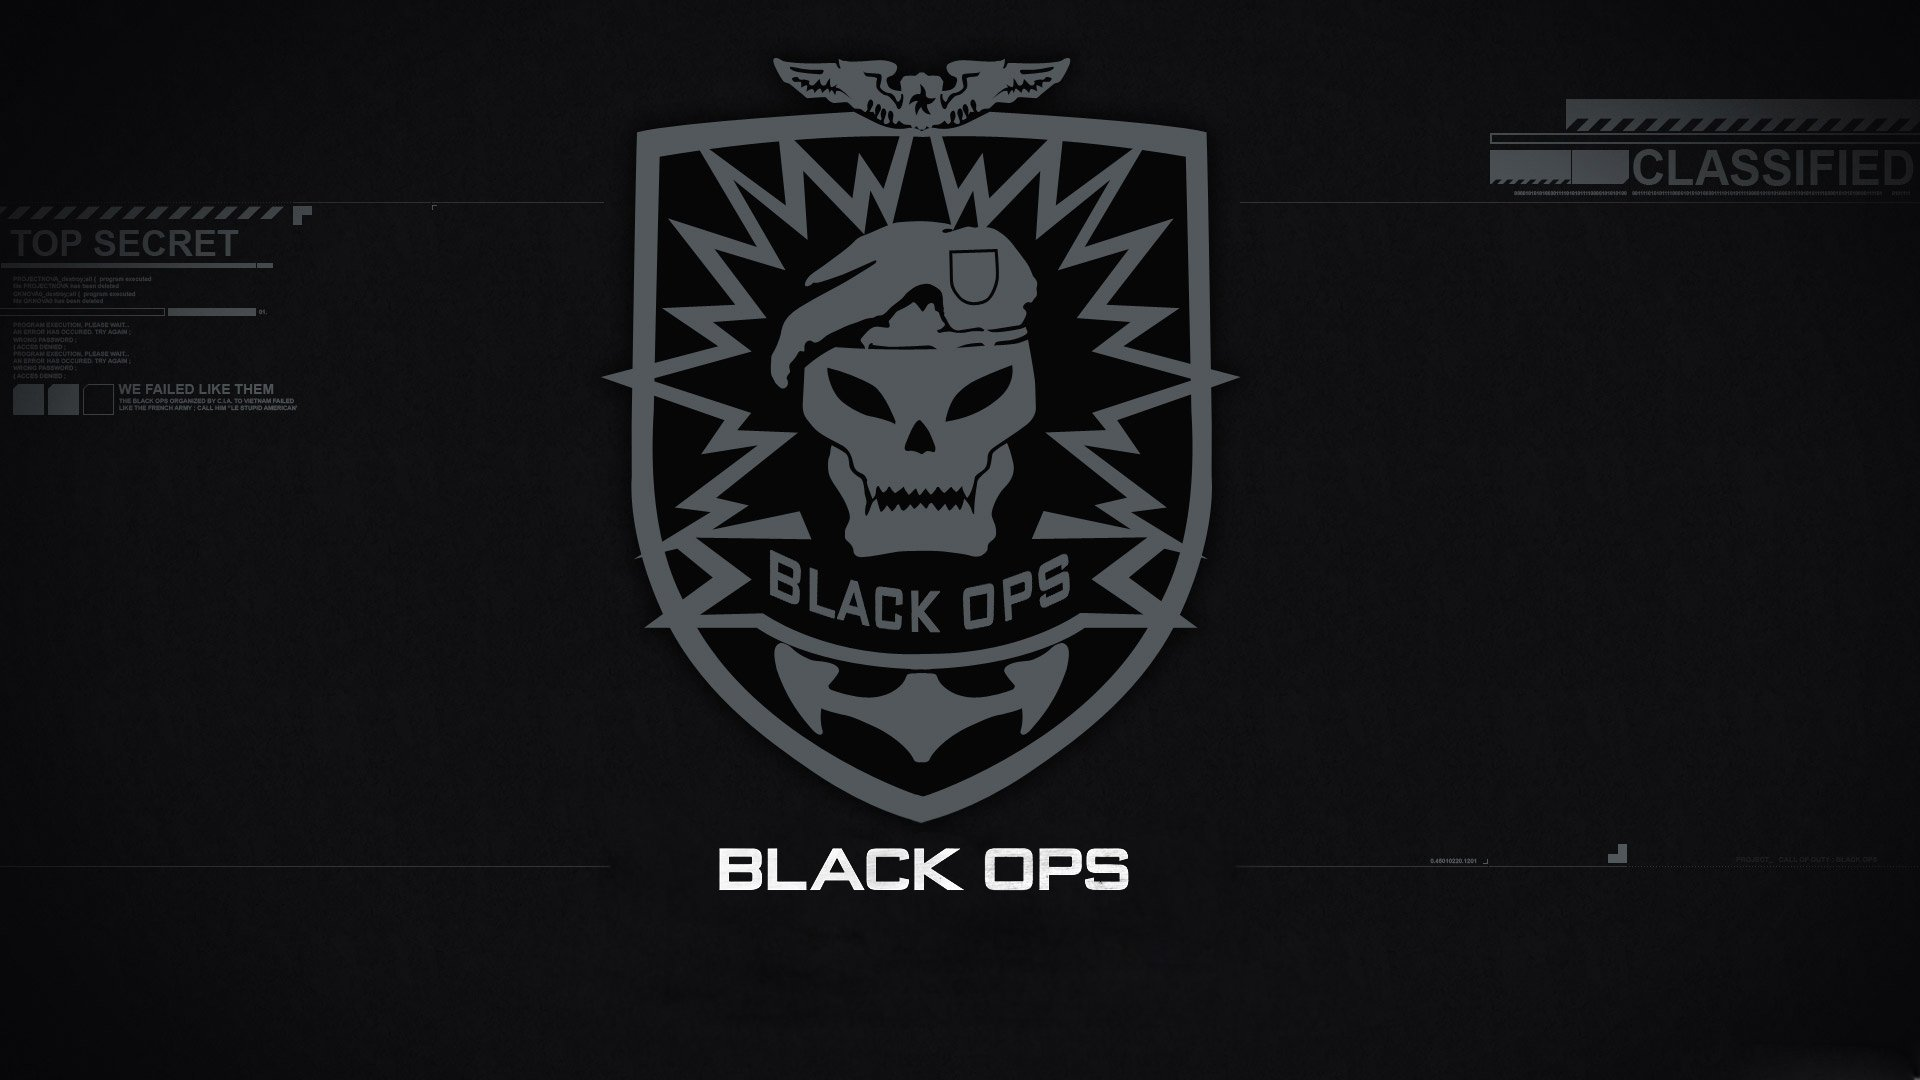 Free Download Black Ops 2 Wallpaper Memes 1920x1080 For Your